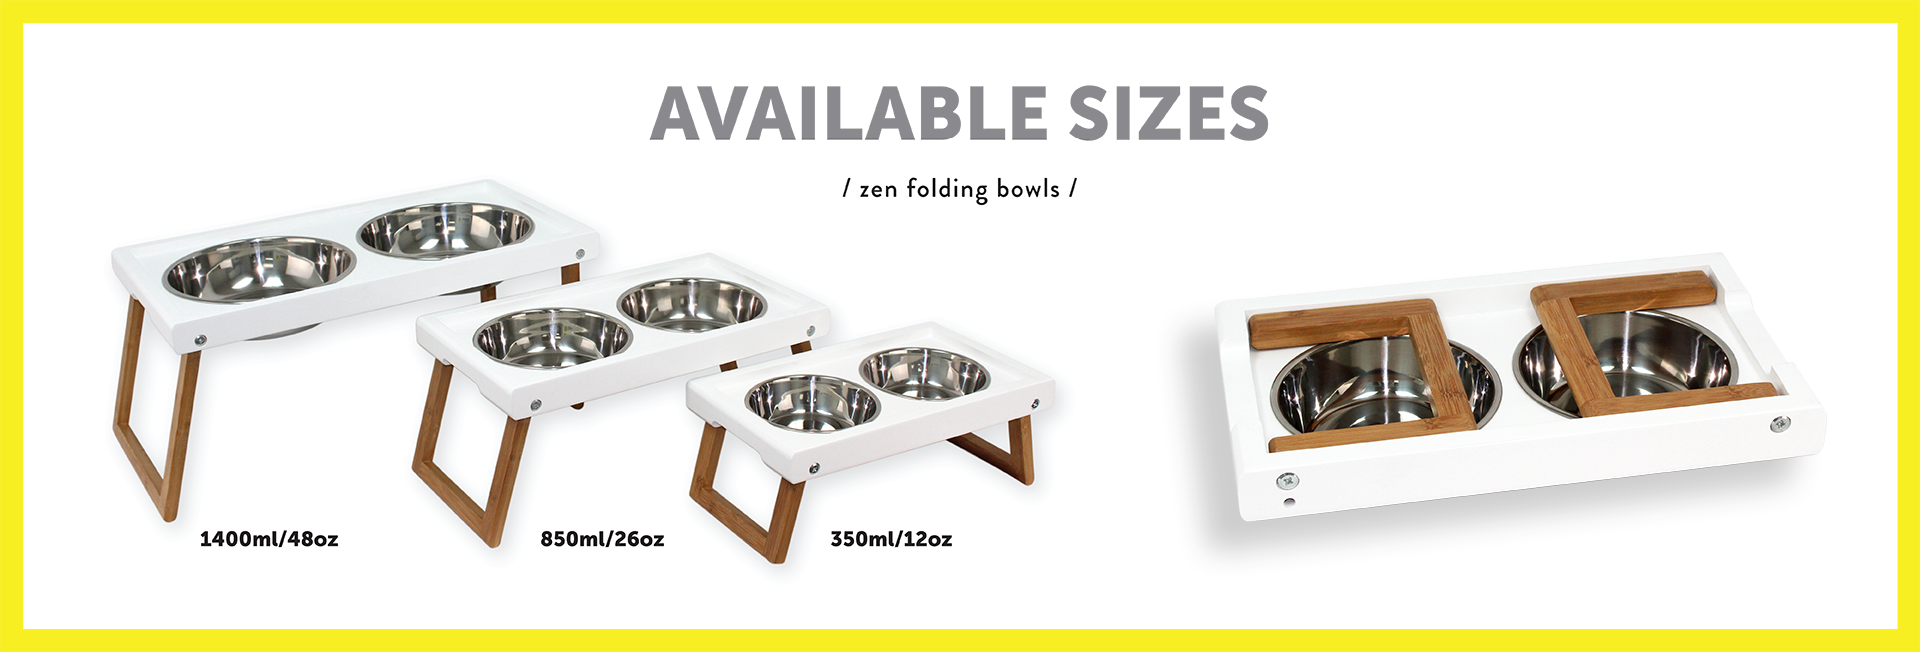 dimensions-zen-folding-bowls-for-dogs-english